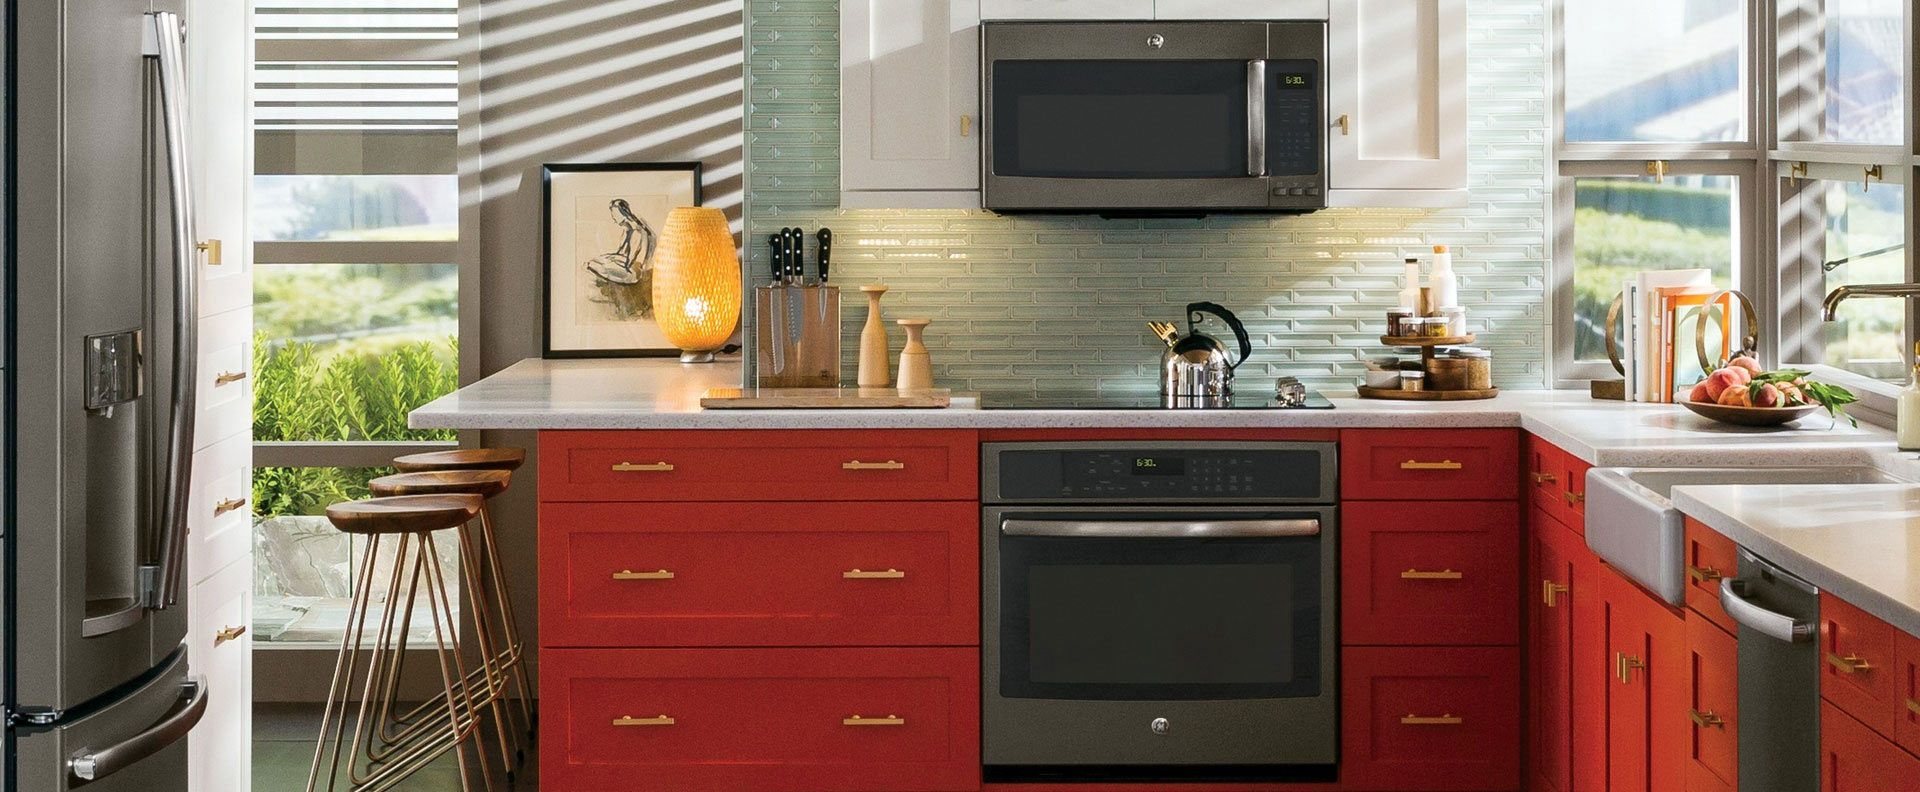 Kitchen appliances in slate color - Make A Statement In The Kitchen With Ge Slate Appliances